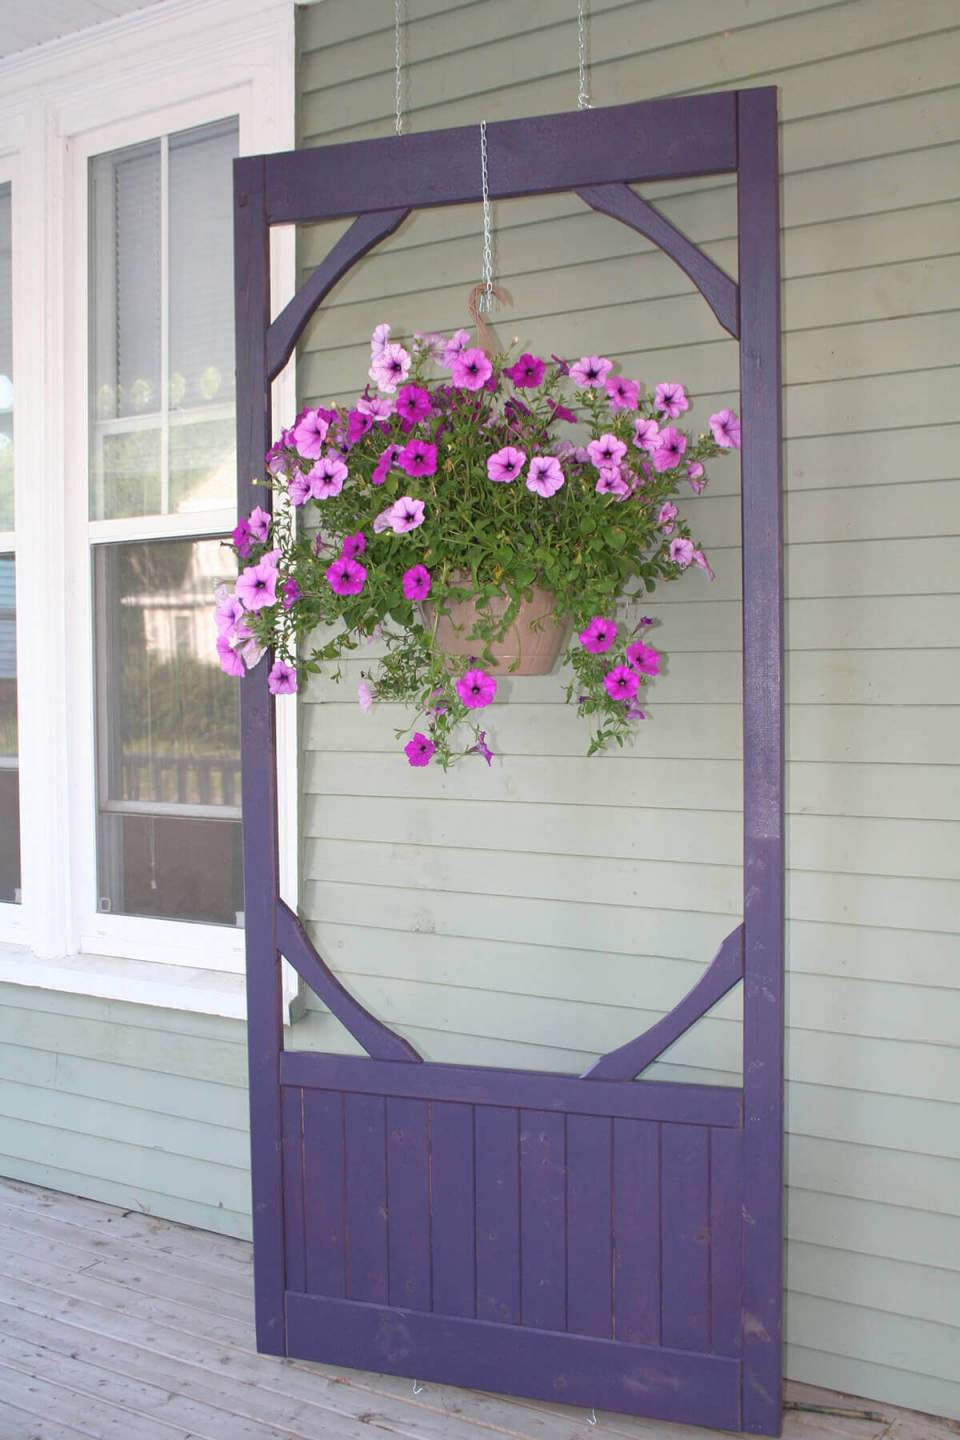 Hanging Screen Door with Bountiful Planter | Creative Repurposed Old Door Ideas & Projects For Your Backyard